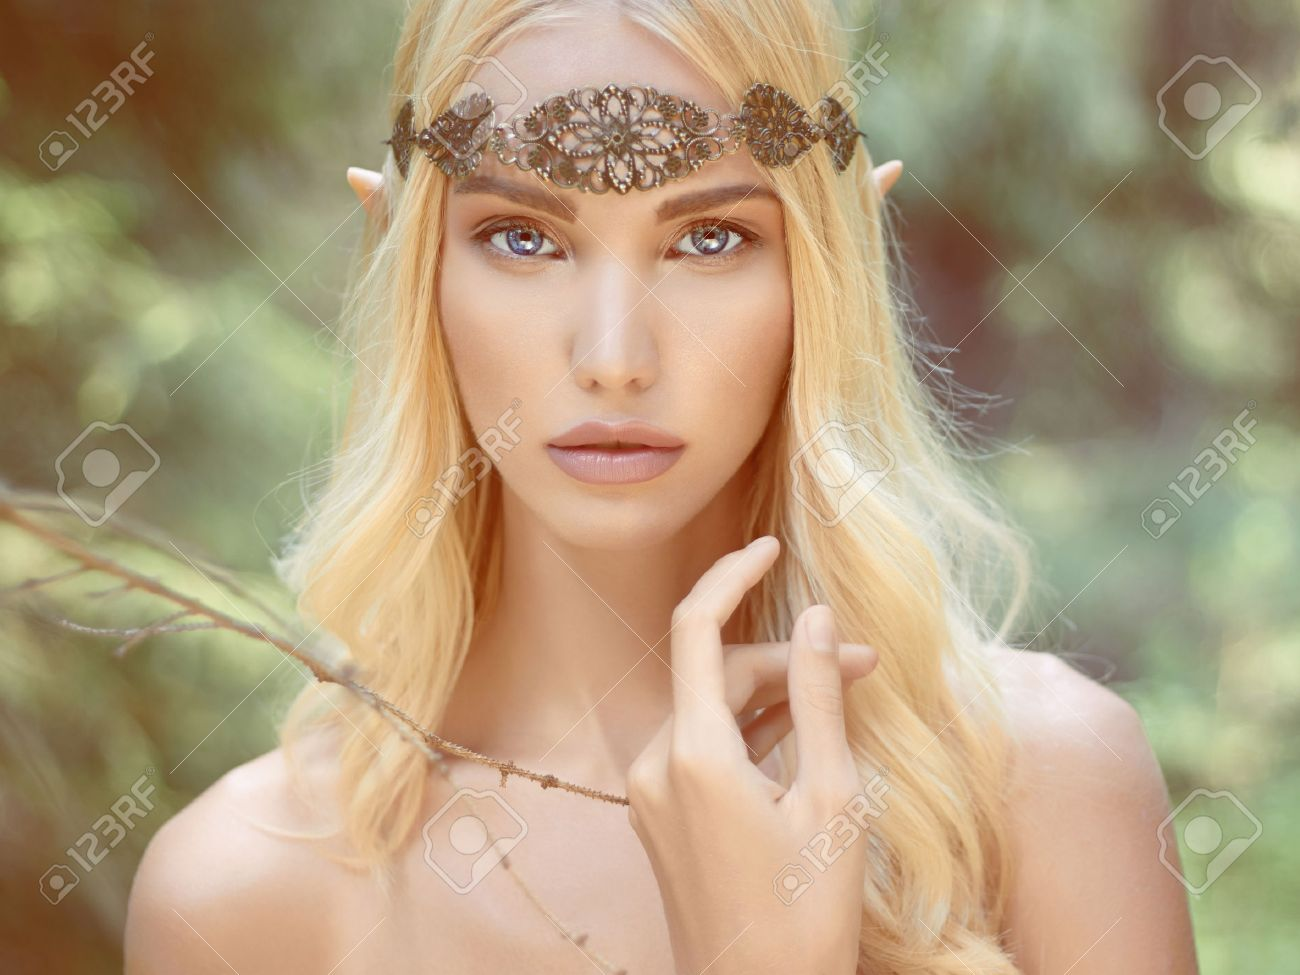 Female Elf Temptress | fantasie | Pinterest | Beautiful, Digital ...